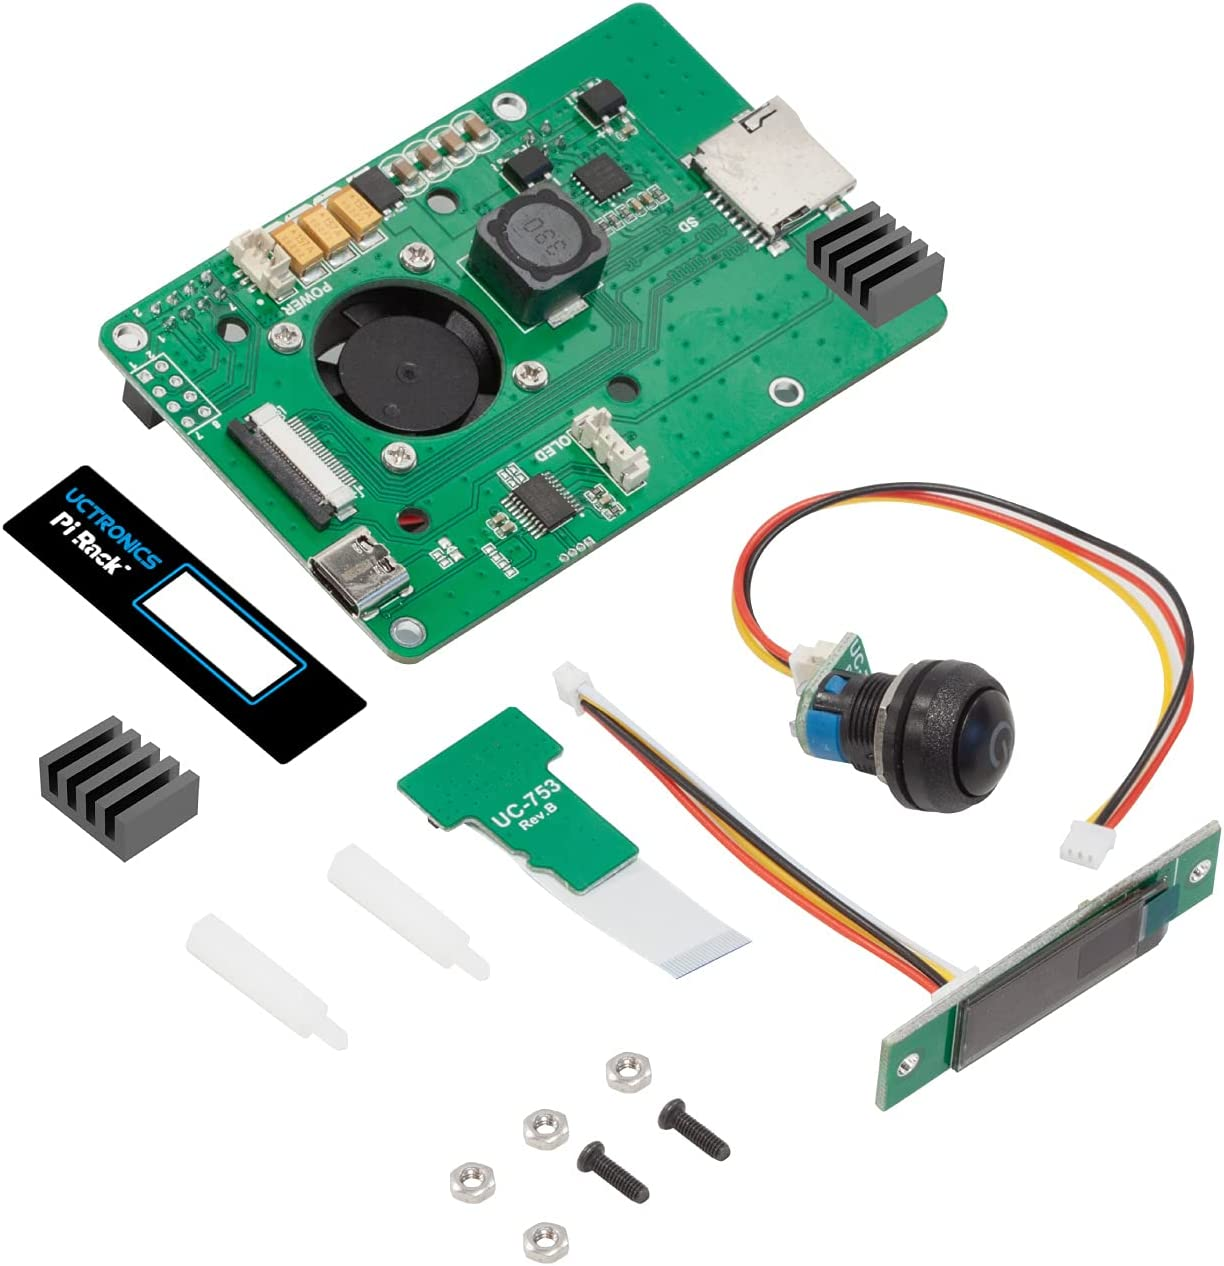 UCTRONICS for Raspberry Pi 4 Rerouting Board with POE Functionality, OLED Display, Power Switch and SD Adapter Board